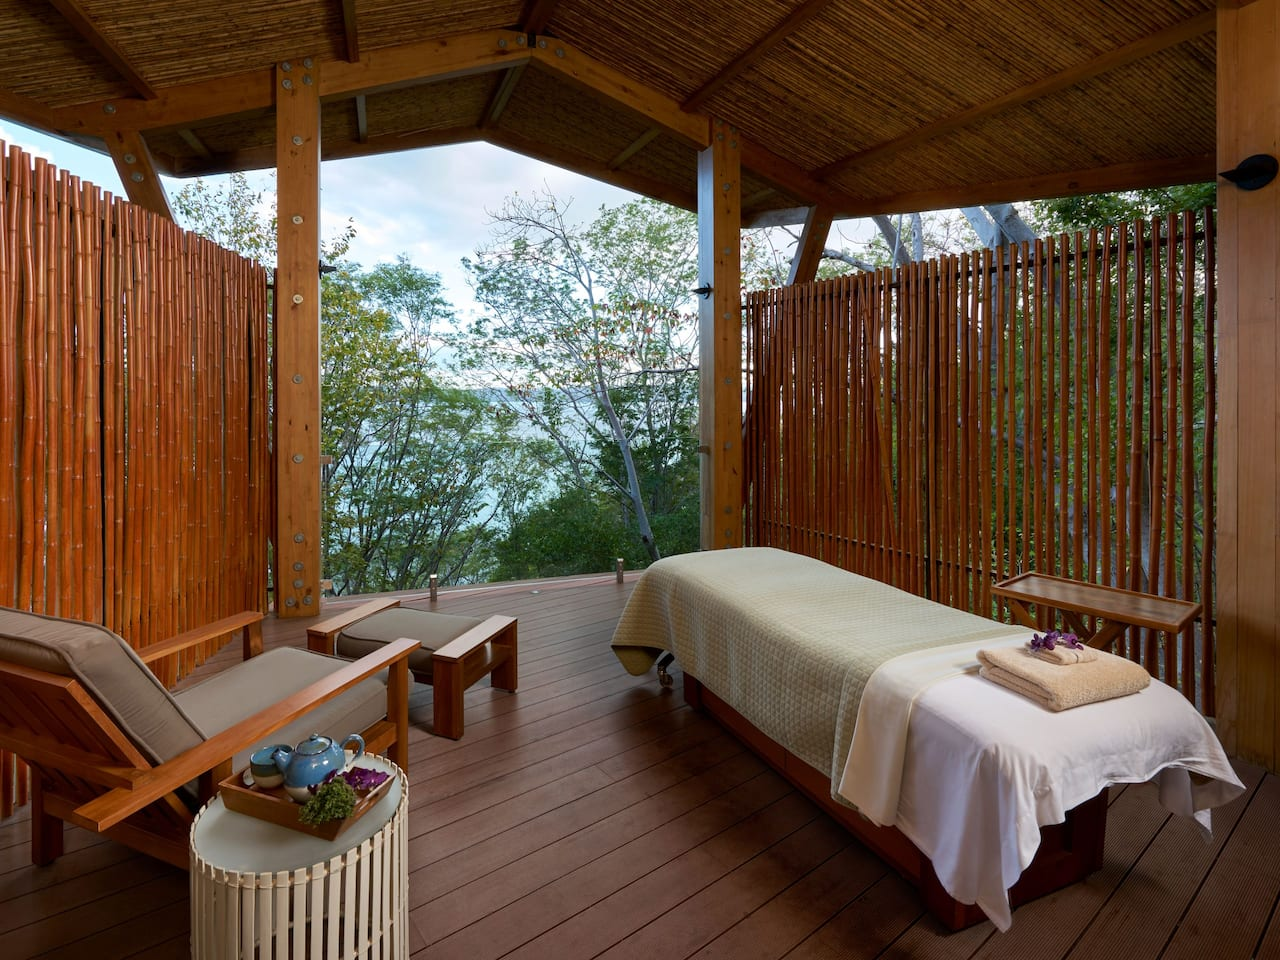 Wellness Costa Rica Onda Spa treatment room